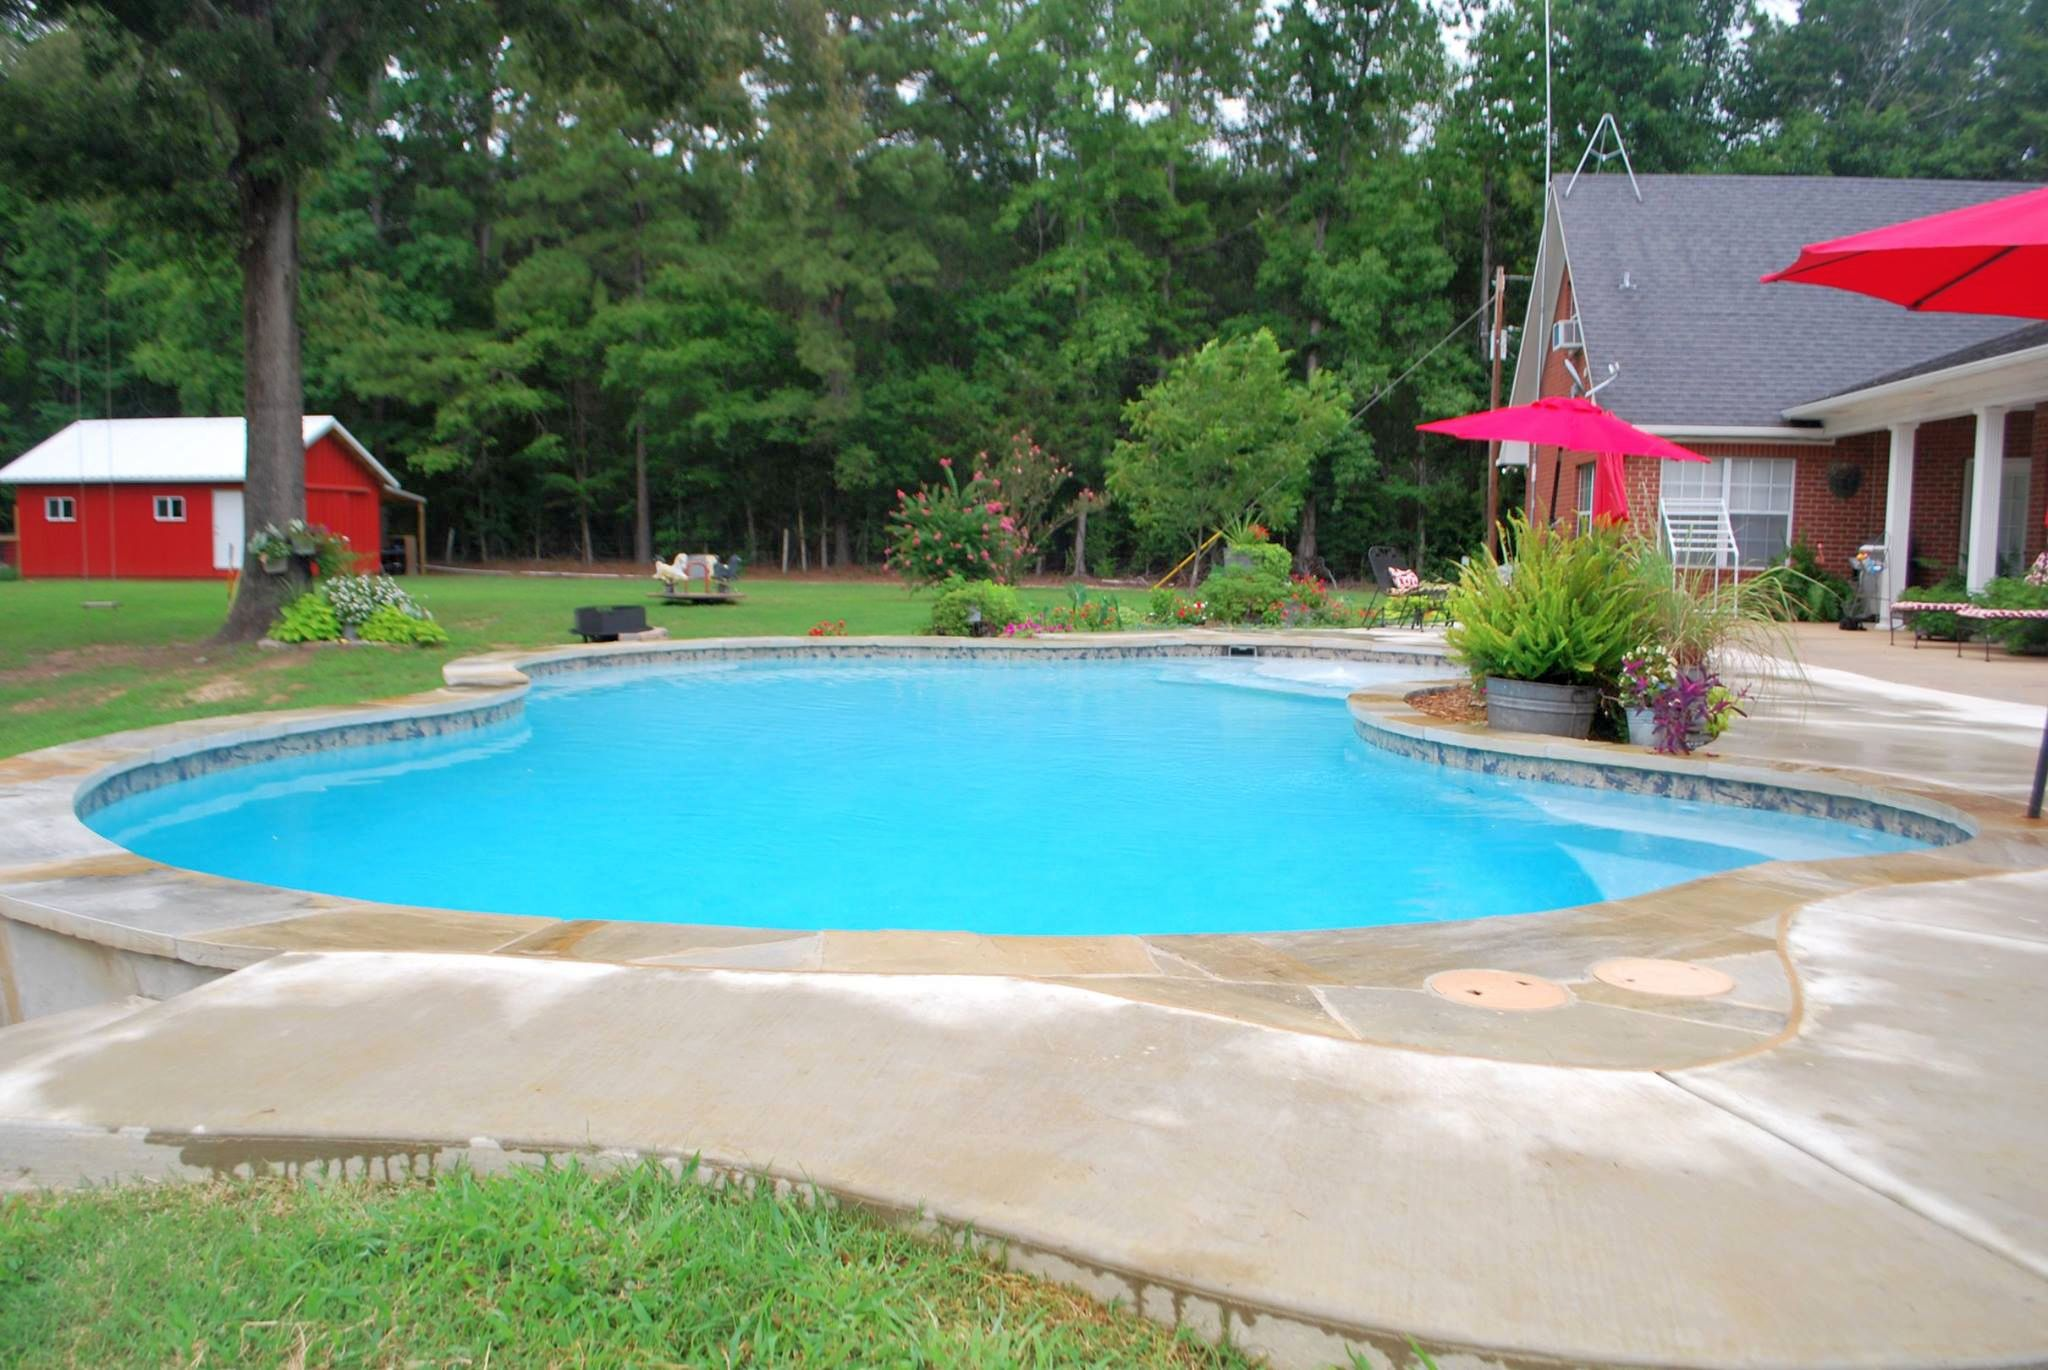 Custom pool builder tyler texas gunite pool construction - Above ground swimming pools tyler texas ...